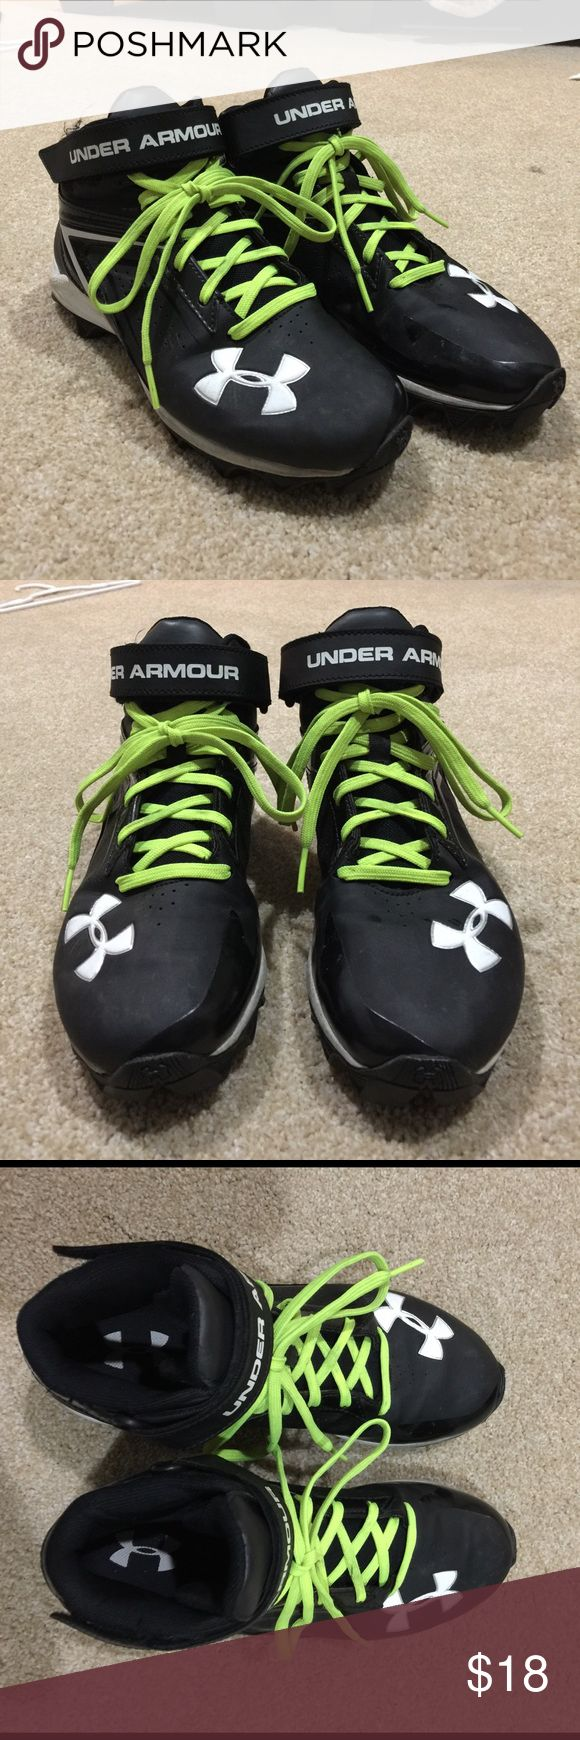 Boy's Under Armour Cleats Boy's Black & White Under Armour Cleats, size 5 Youth, sports shoes, football or soccer cleats. Good gently used condition. Only used for one season on sports turf (faux grass). No holes, rips, tears or stains.  20% off 3+ items in my closet. BUNDLE & SAVE!! Under Armour Shoes